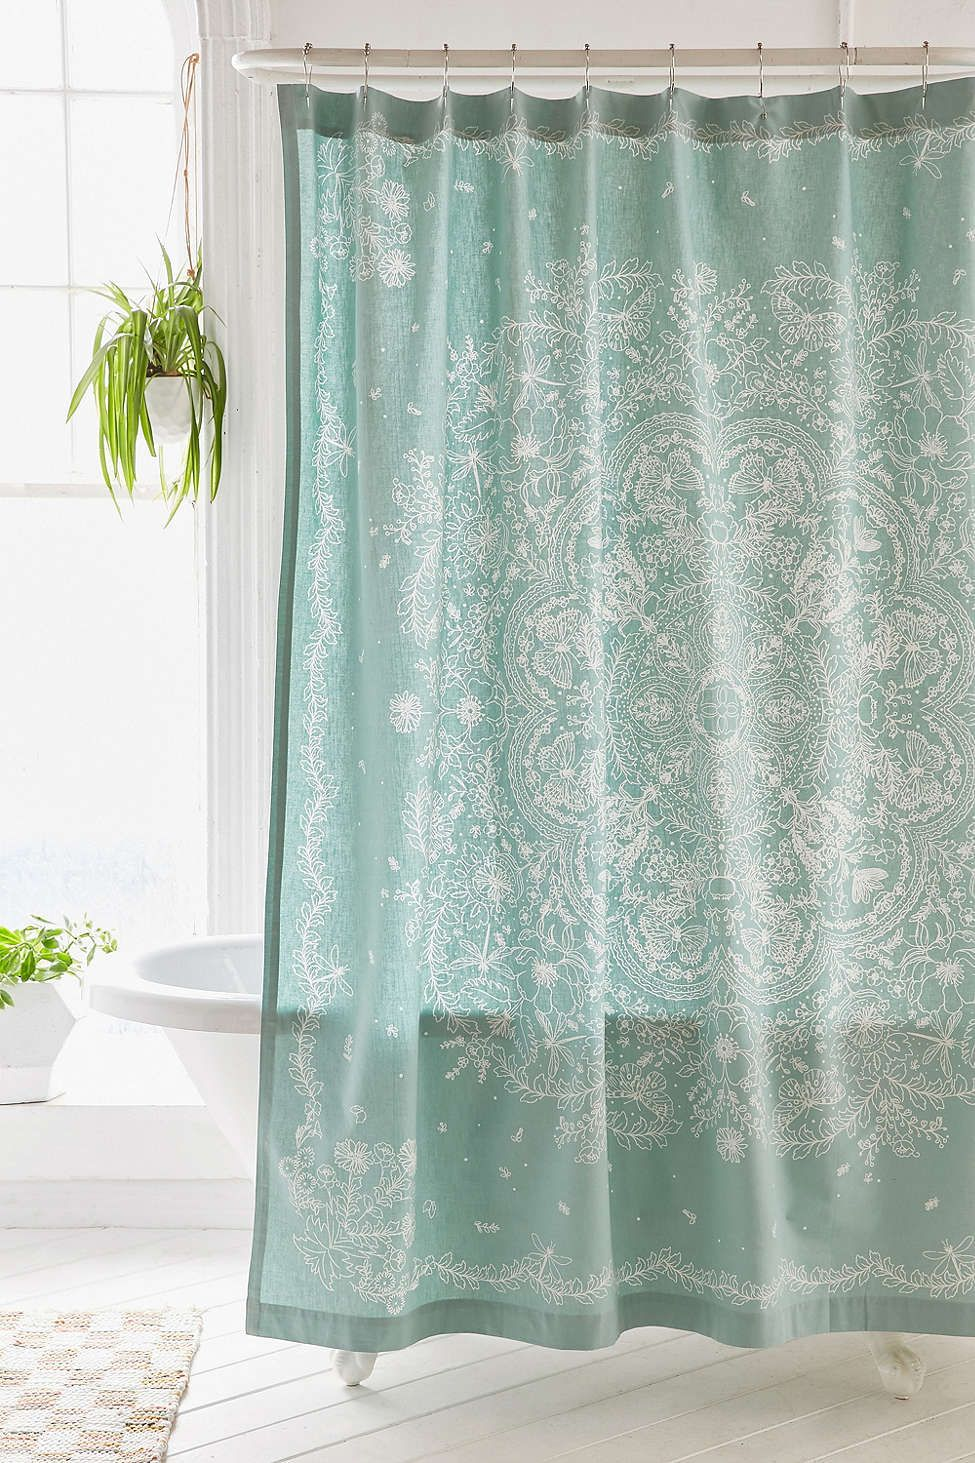 Shower Curtain Liner Lace Shower Curtains Teal Shower Curtains